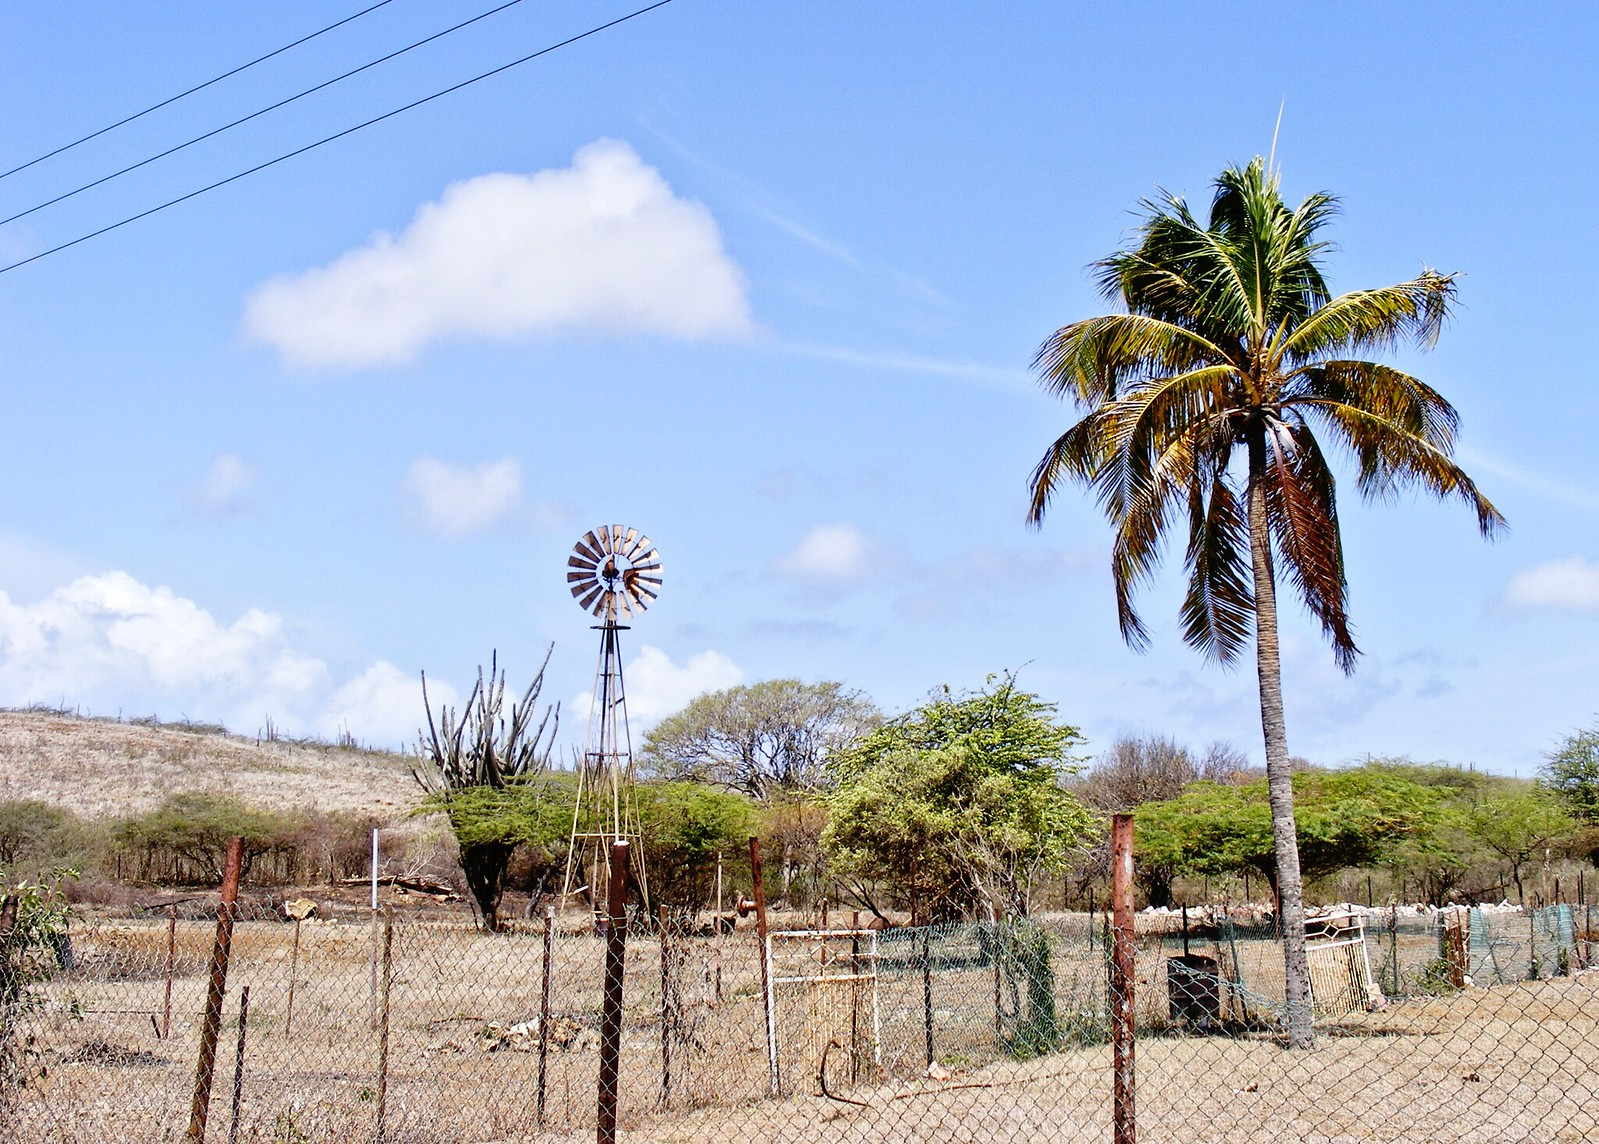 The Kunuku, or countryside of Curaçao.